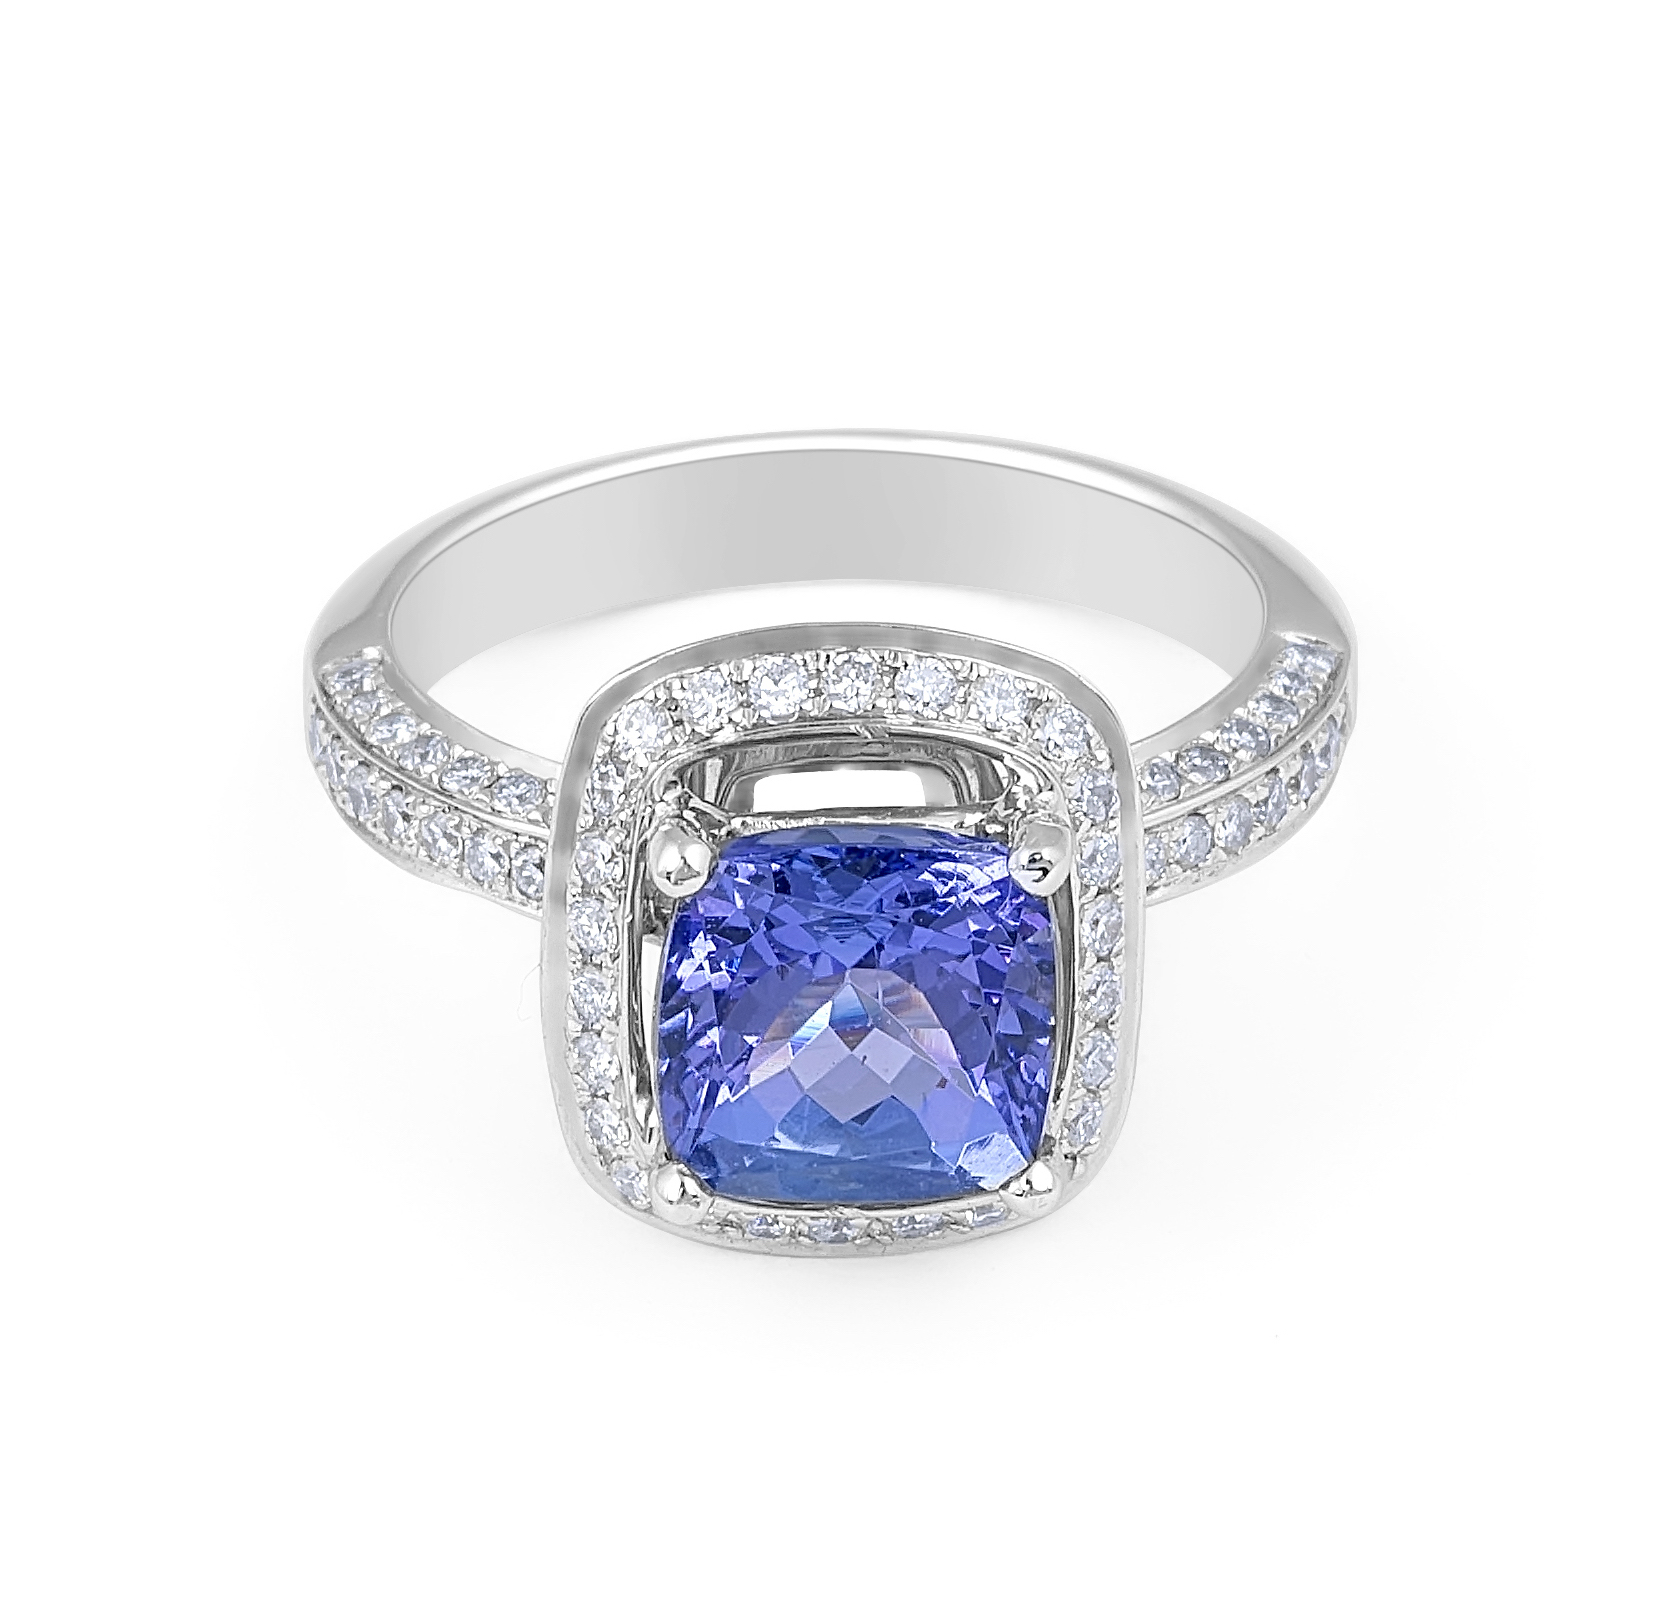 Vintage Style Tanzanite Halo Diamond Ring in 18 Karat White Gold